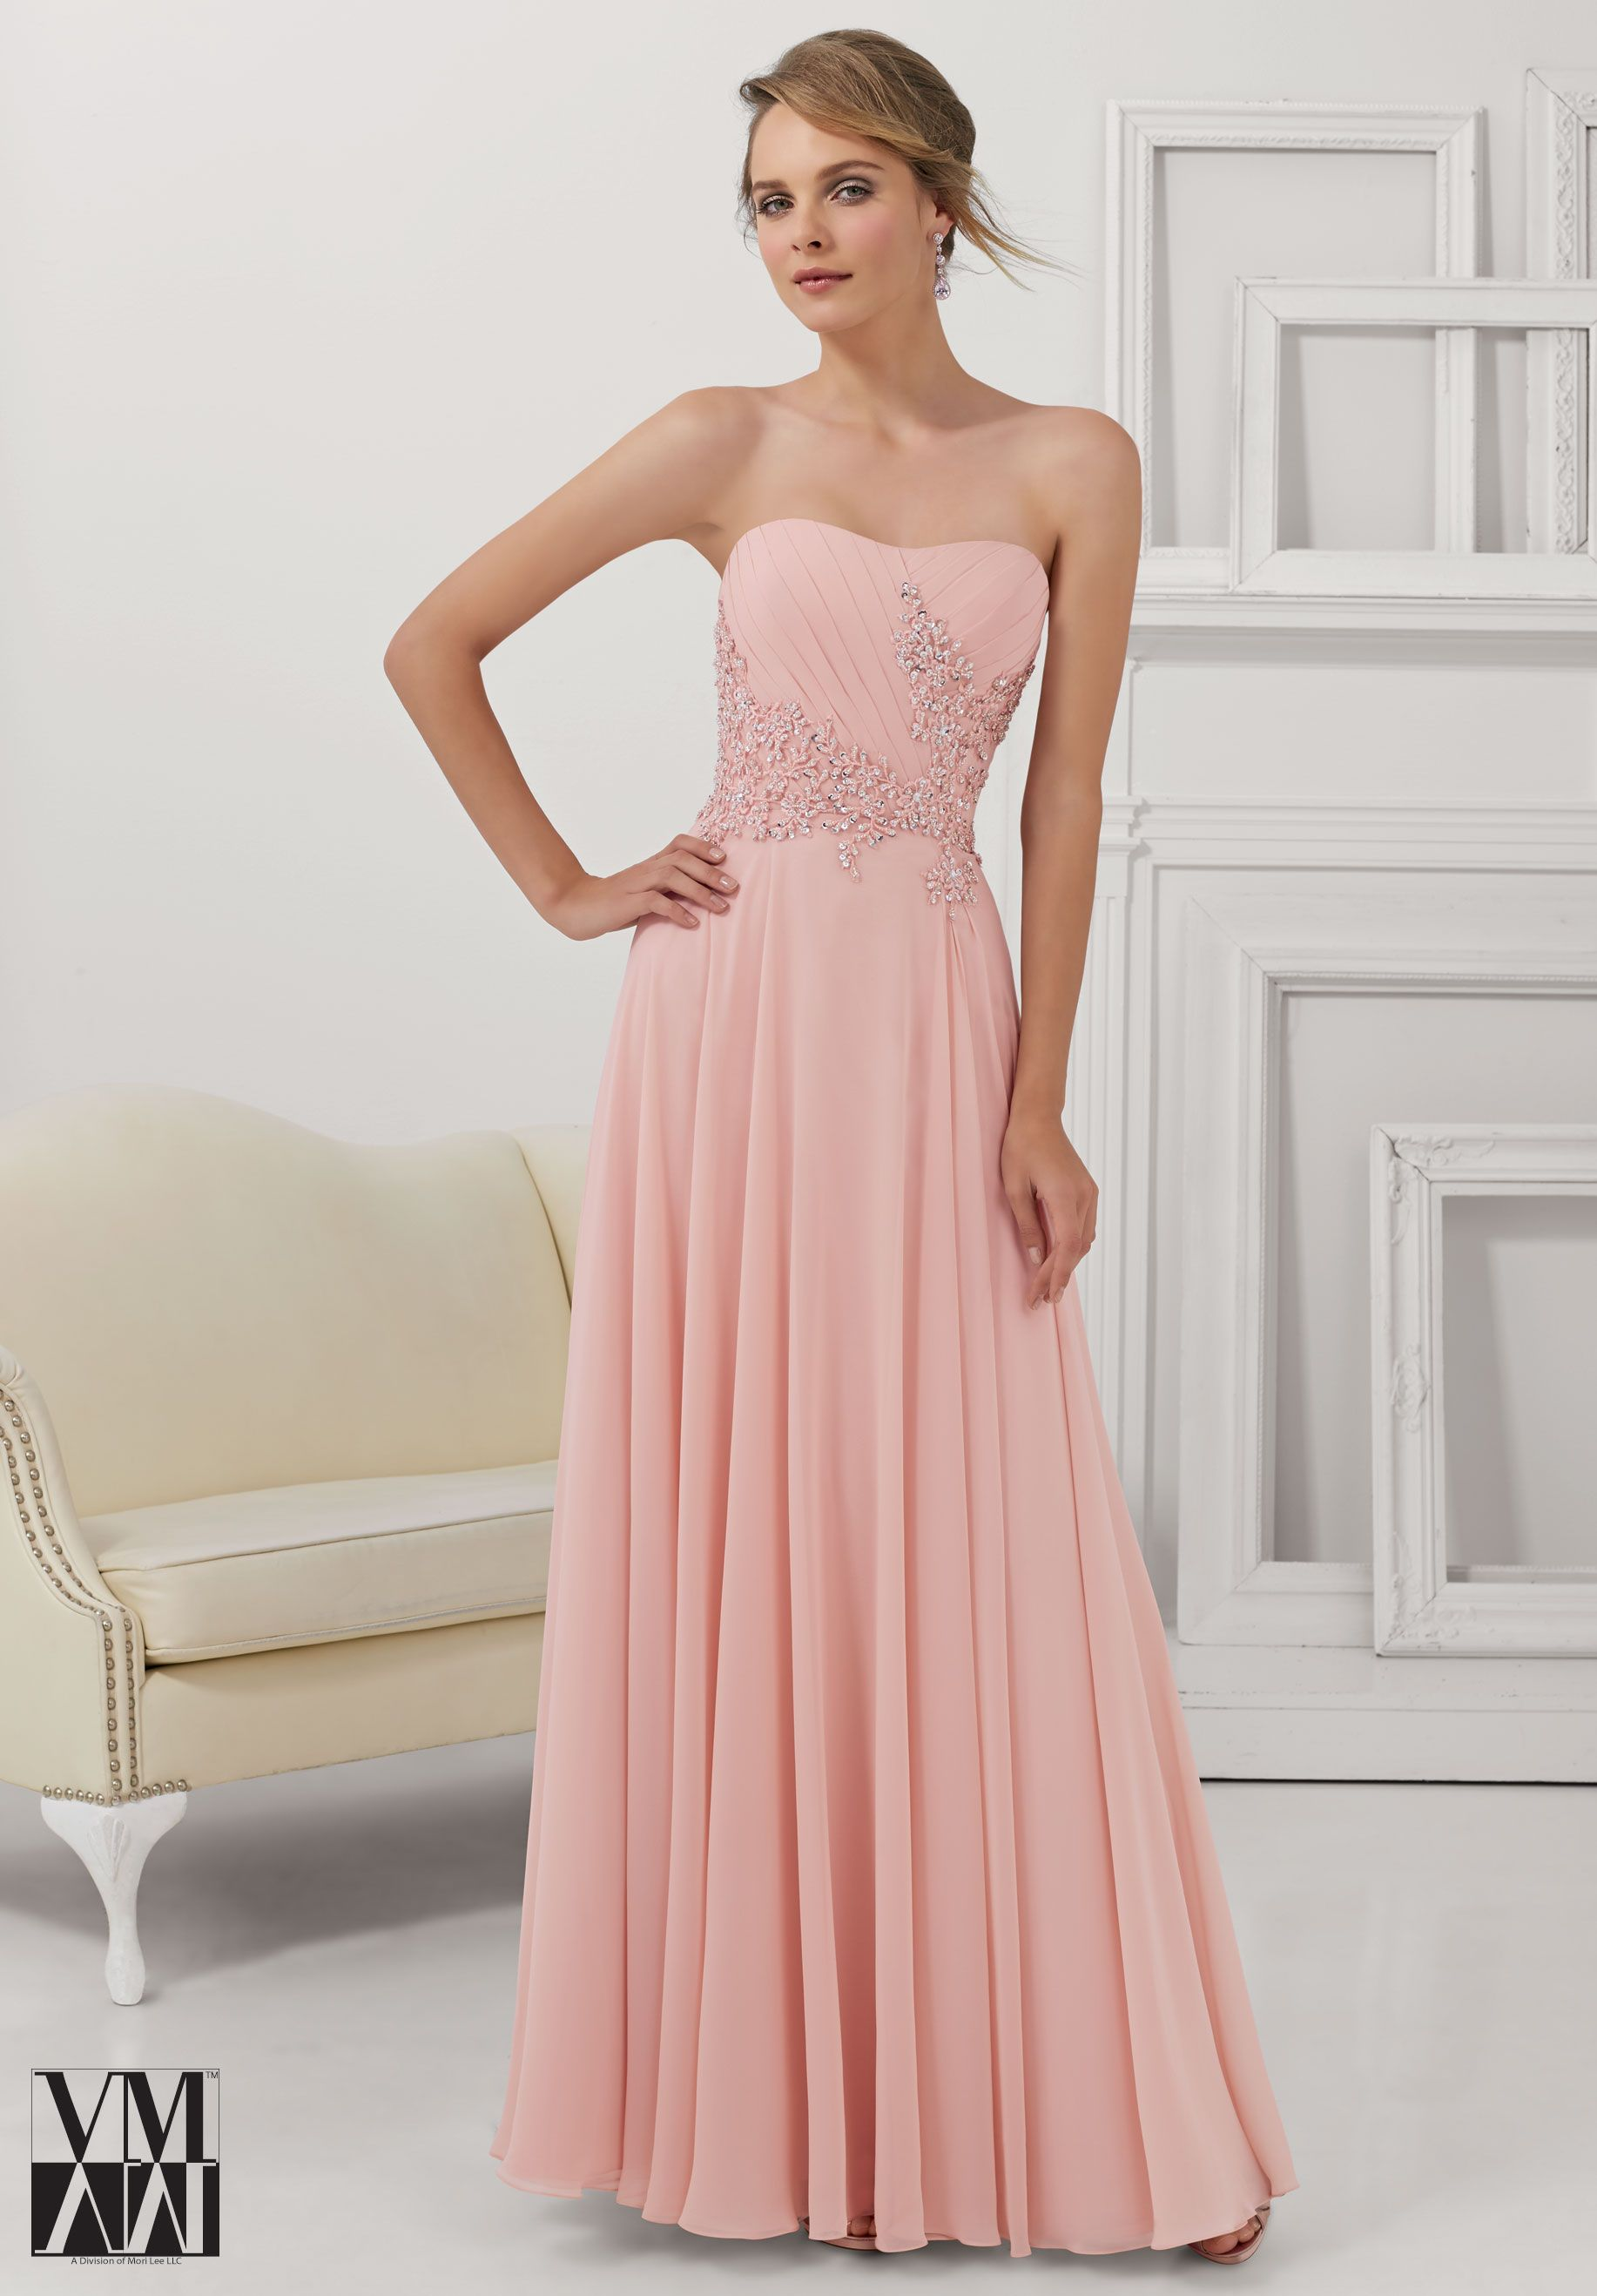 Chiffon with embroidered and beaded appliqués evening gown gowns